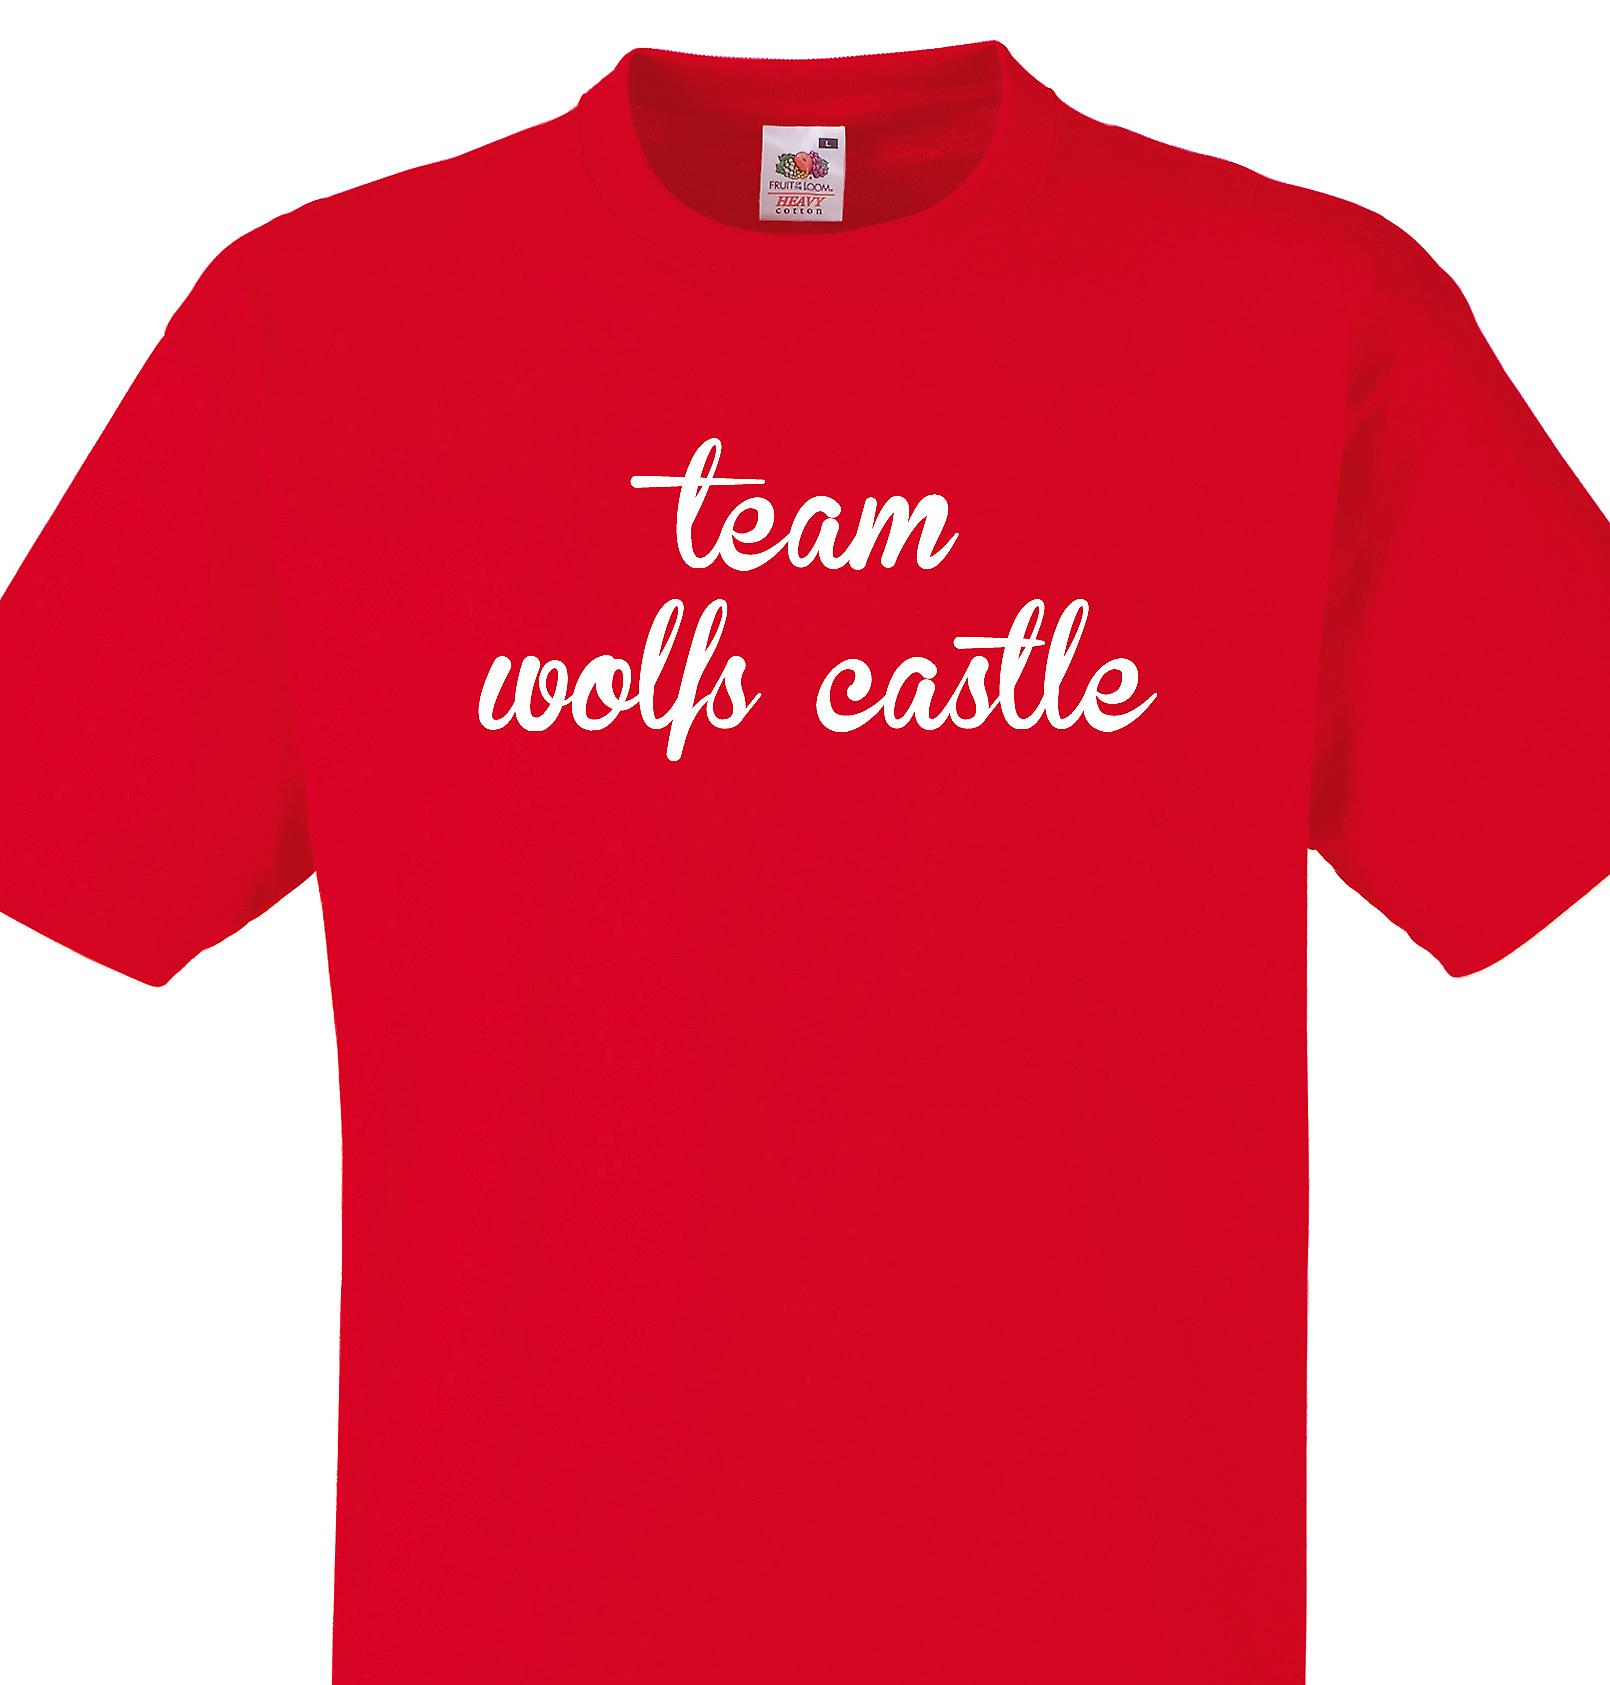 Team Wolfs castle Red T shirt